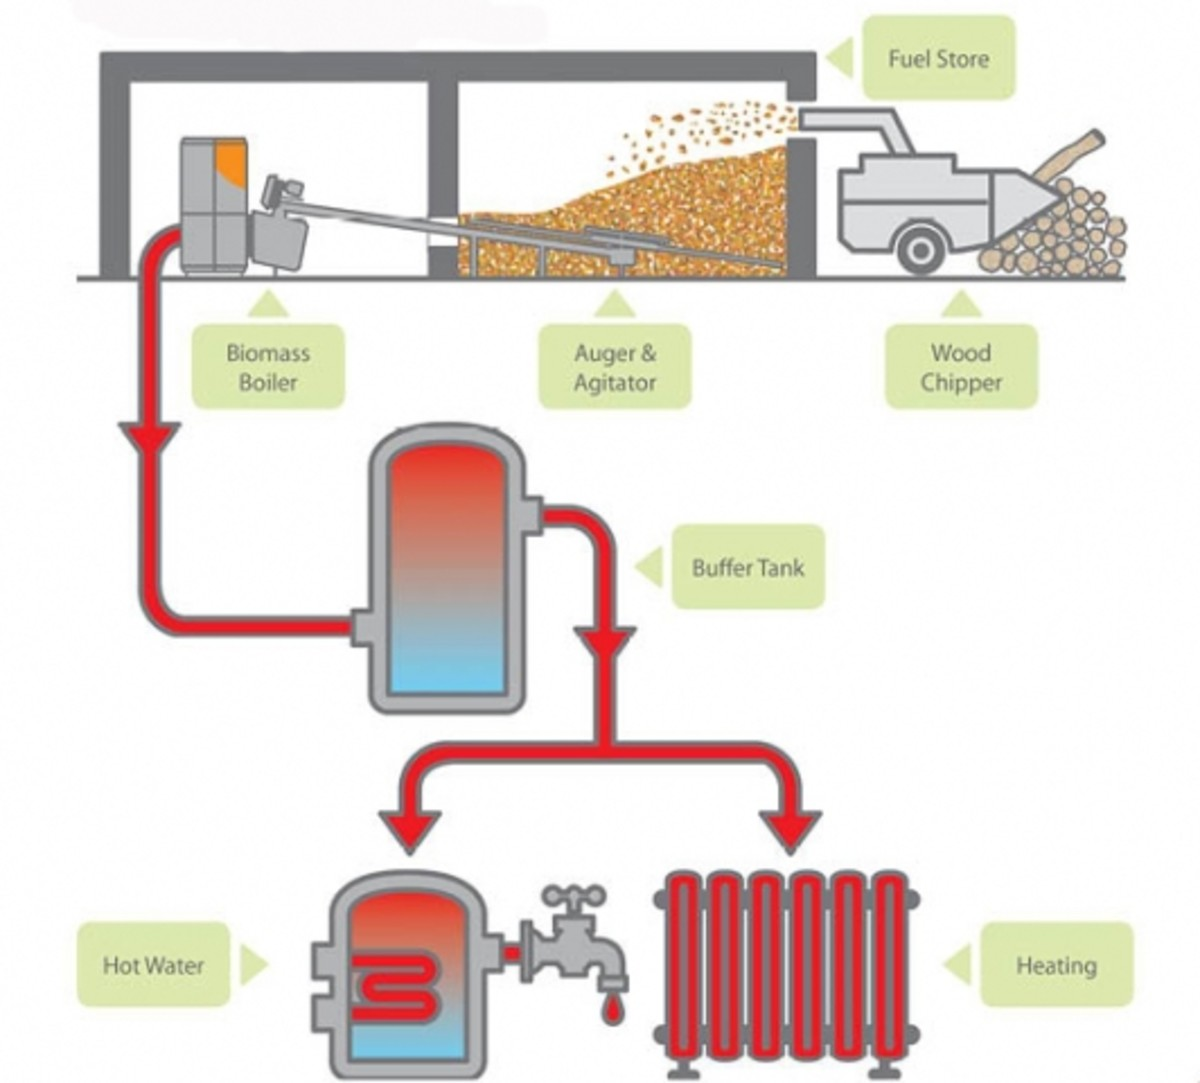 Flow chart detailing wood chip fuel stores